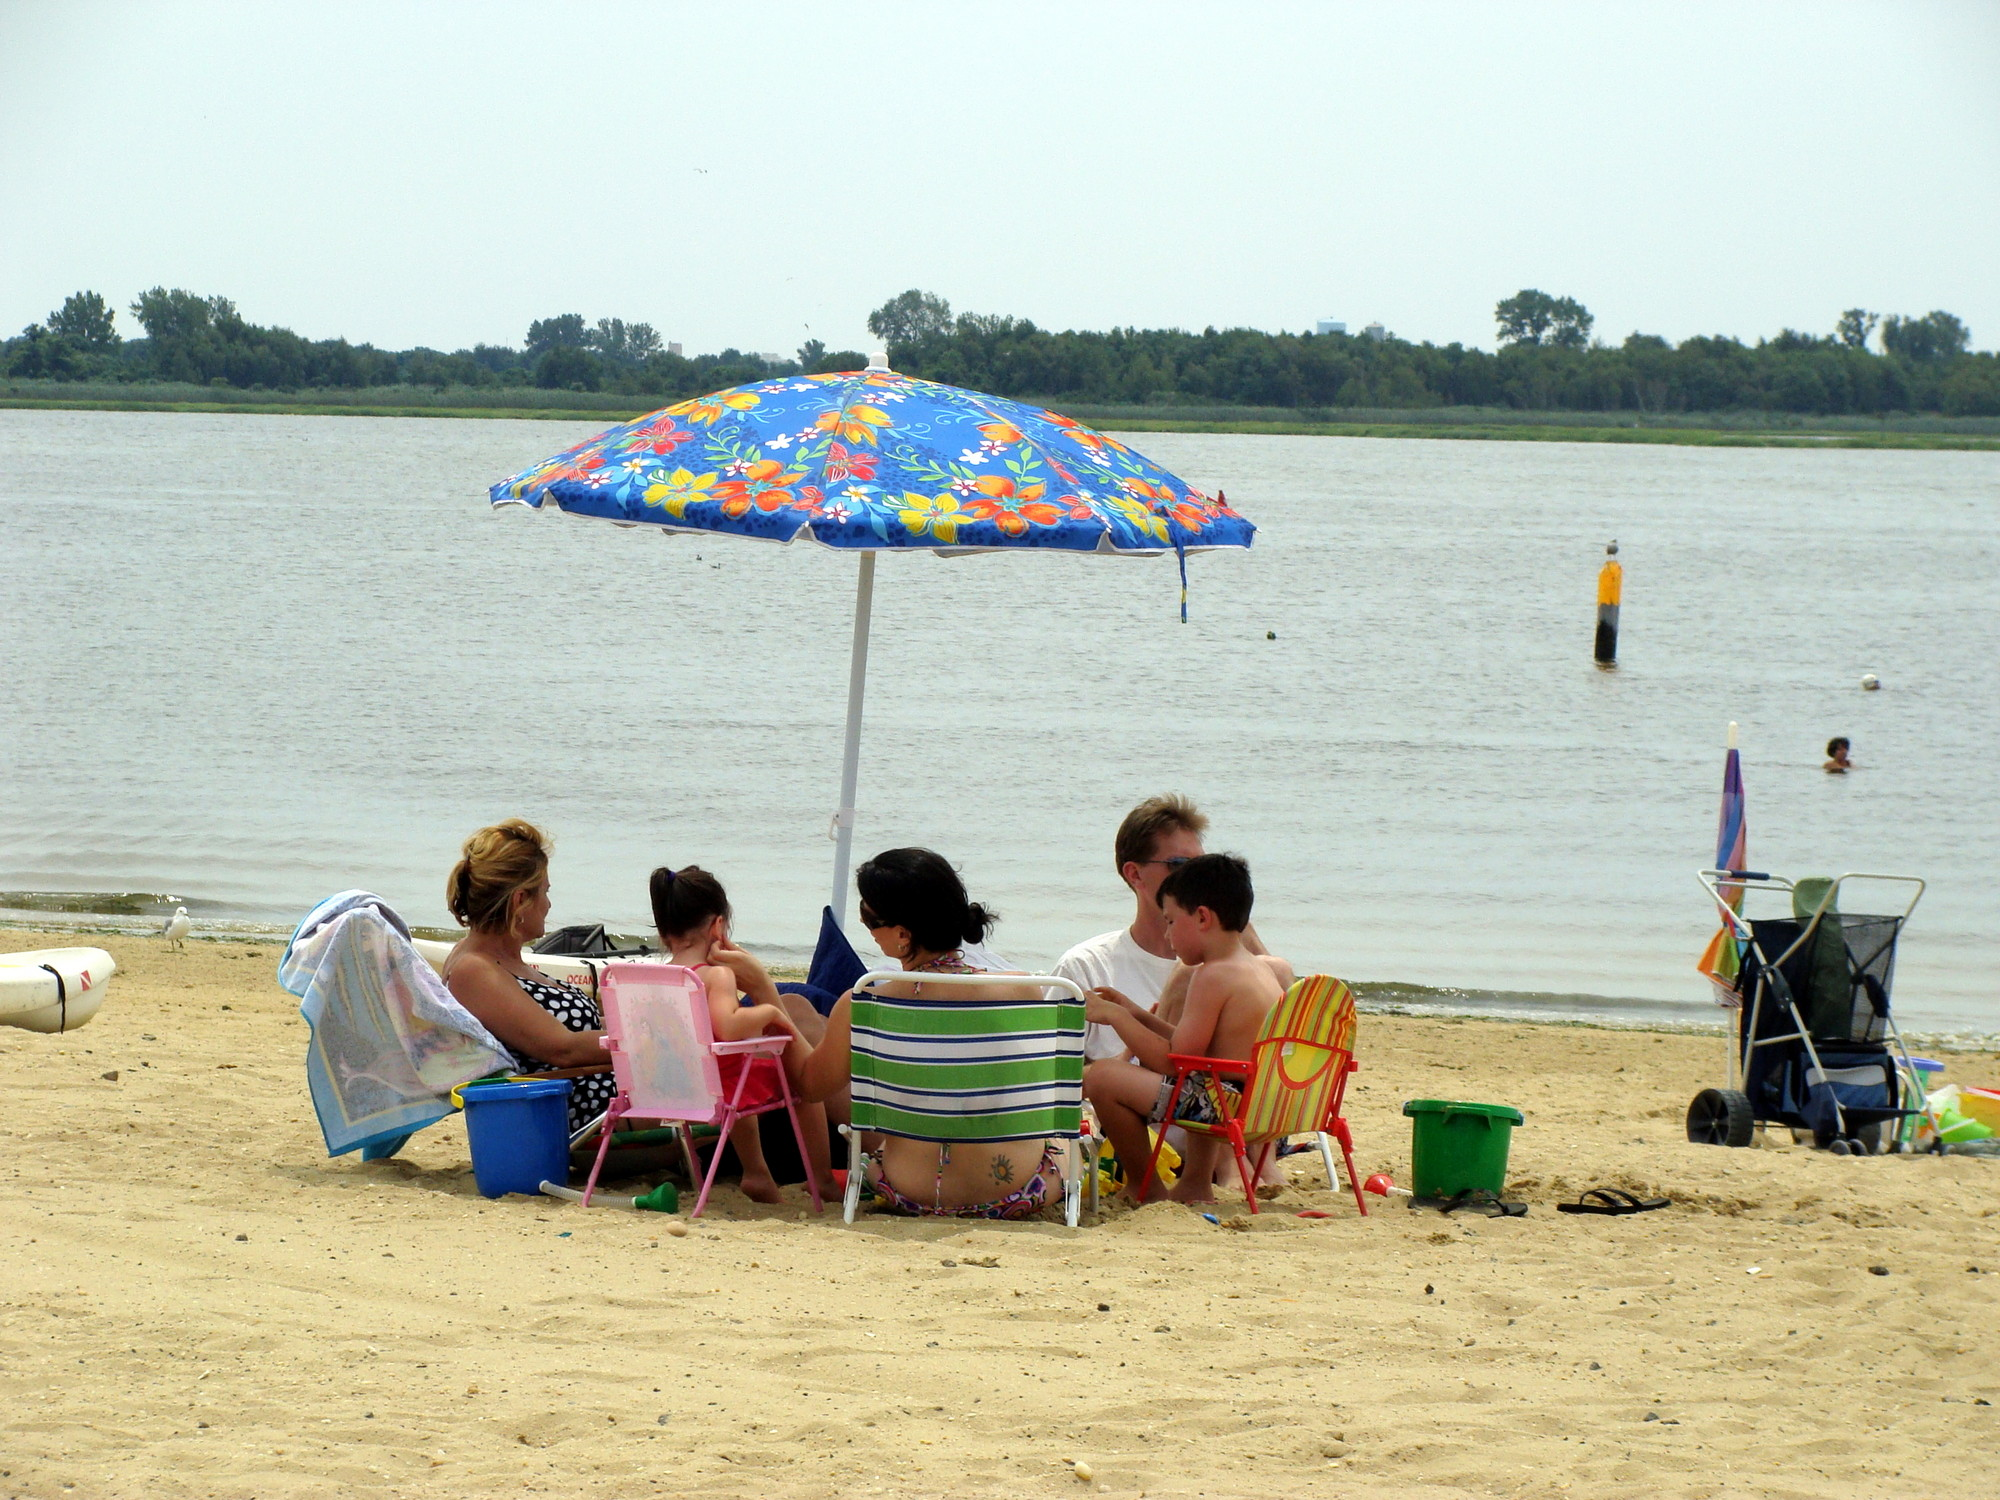 Hewlett Point Park's beach on Hewlett Bay is a relaxing place to spend some time with family and friends.